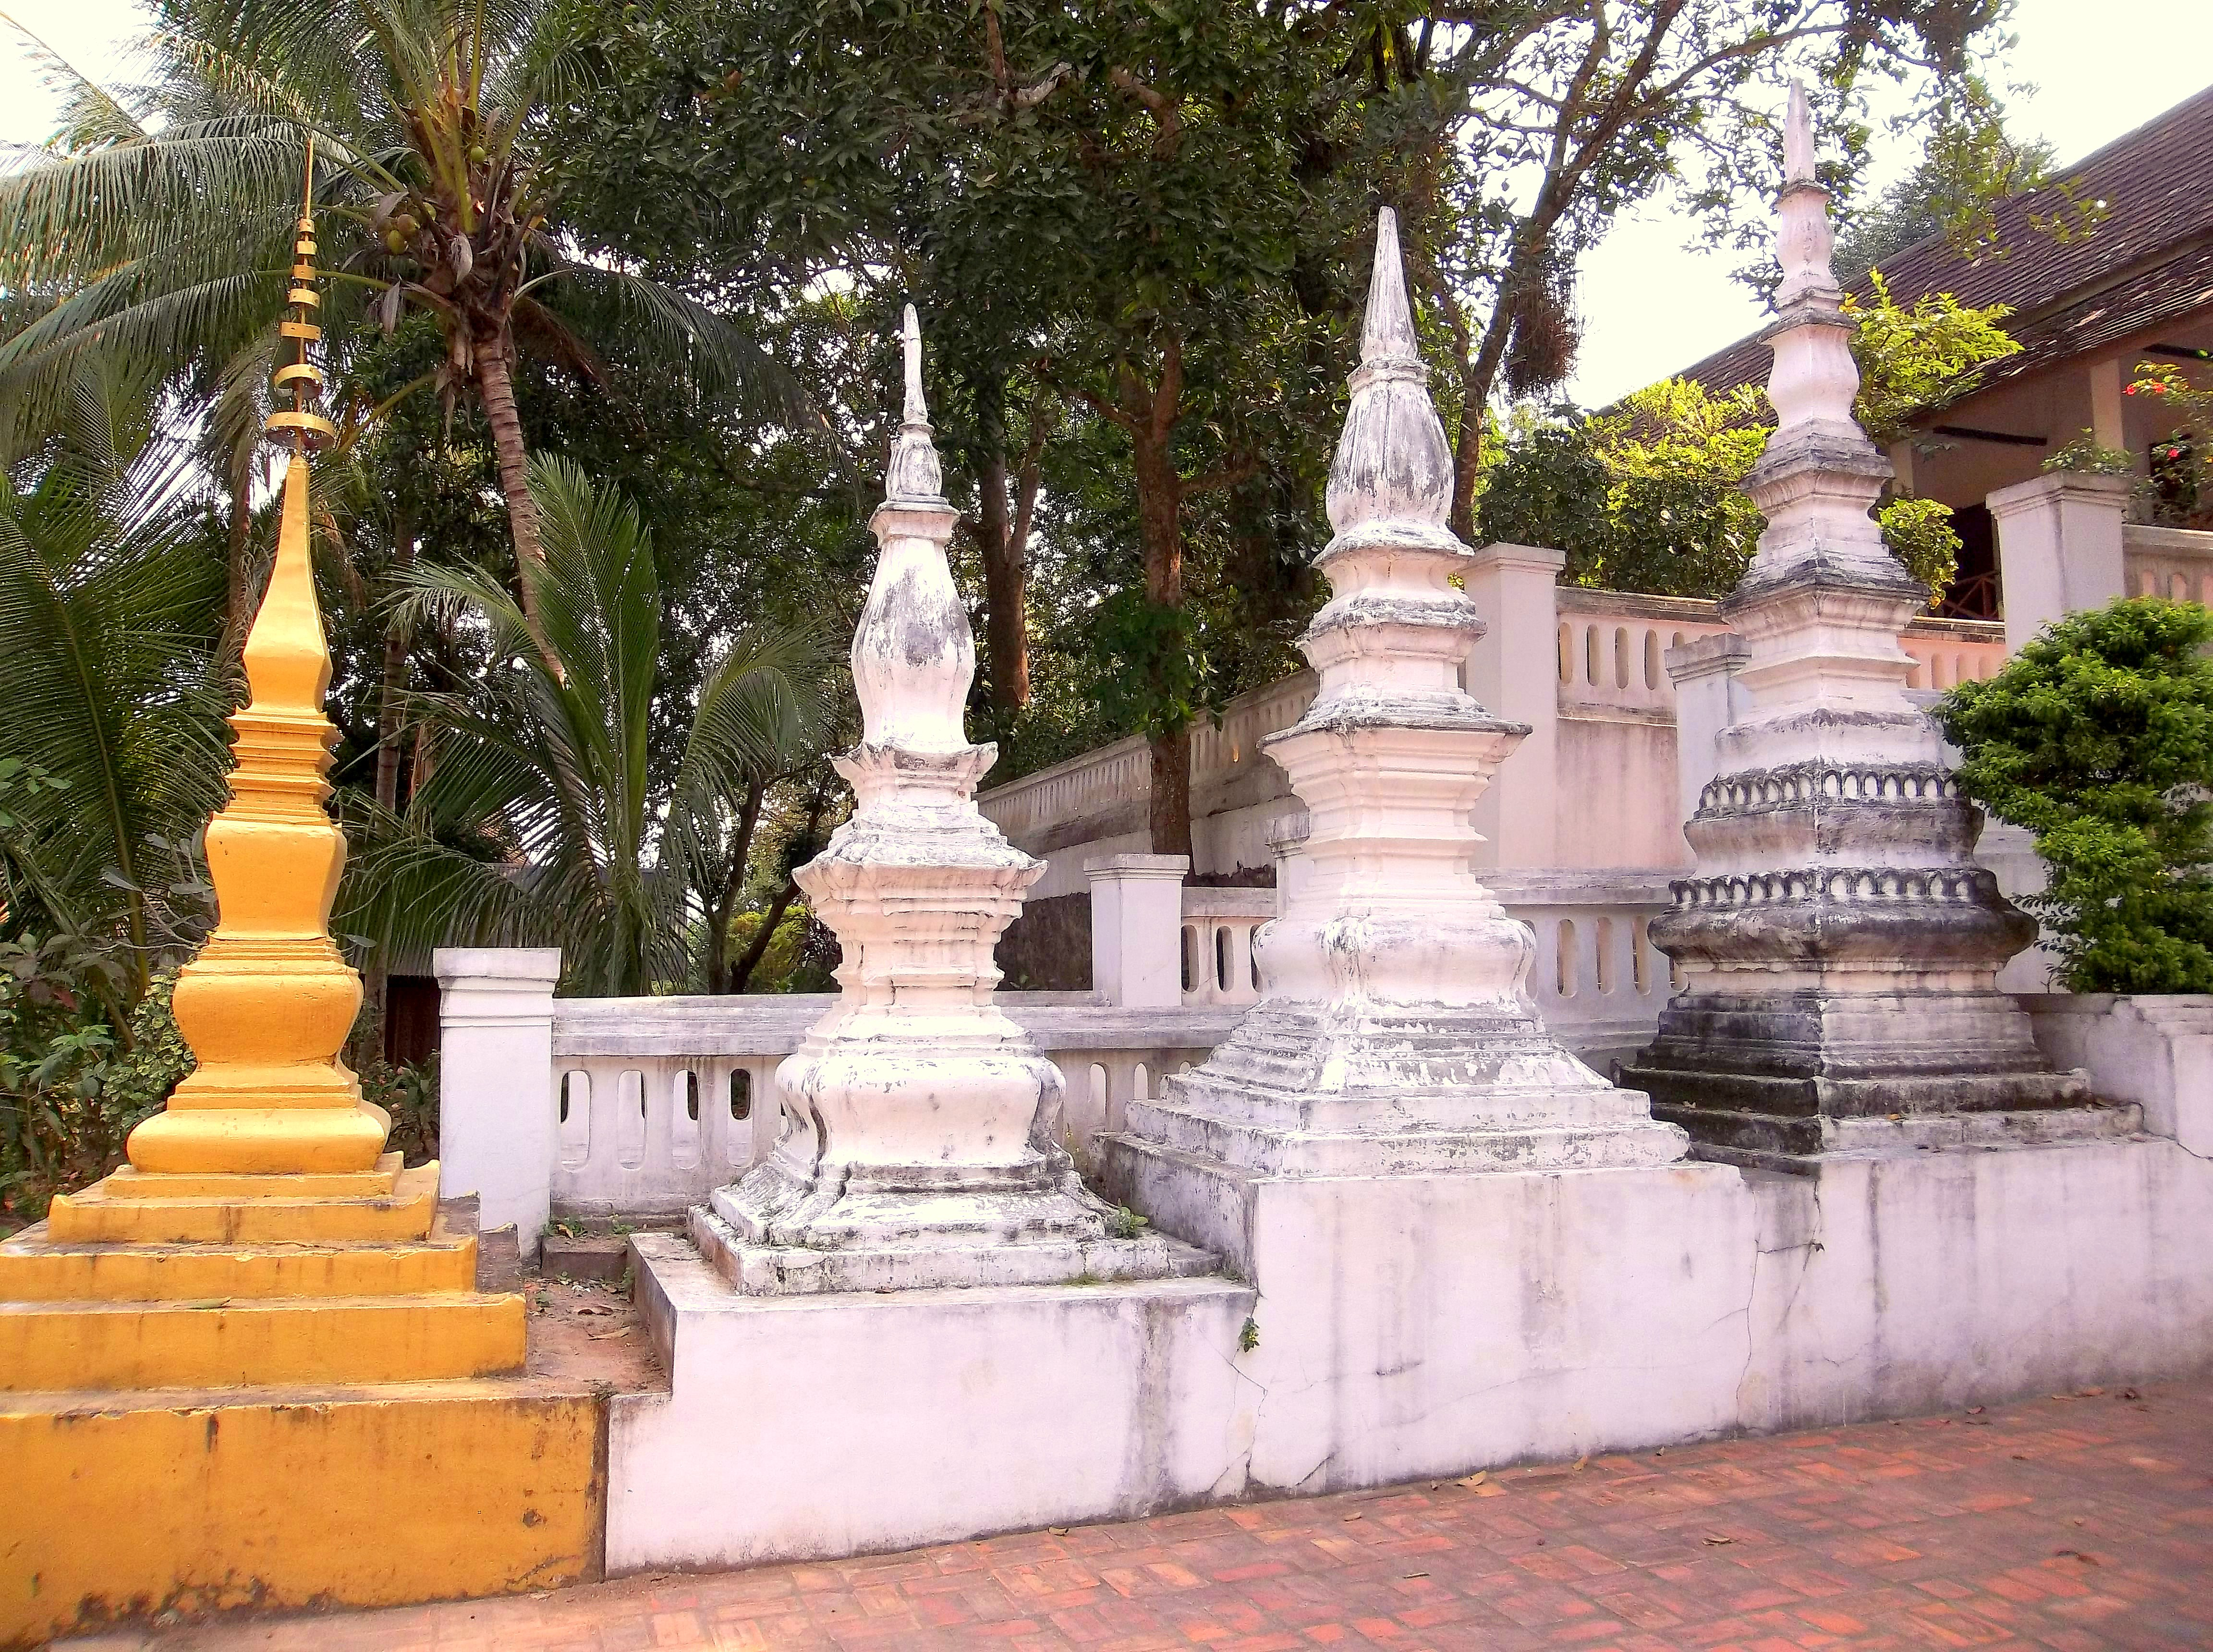 Vat Siphoutthabat Thippharam - in the Forest - Luang Prabang, Laos